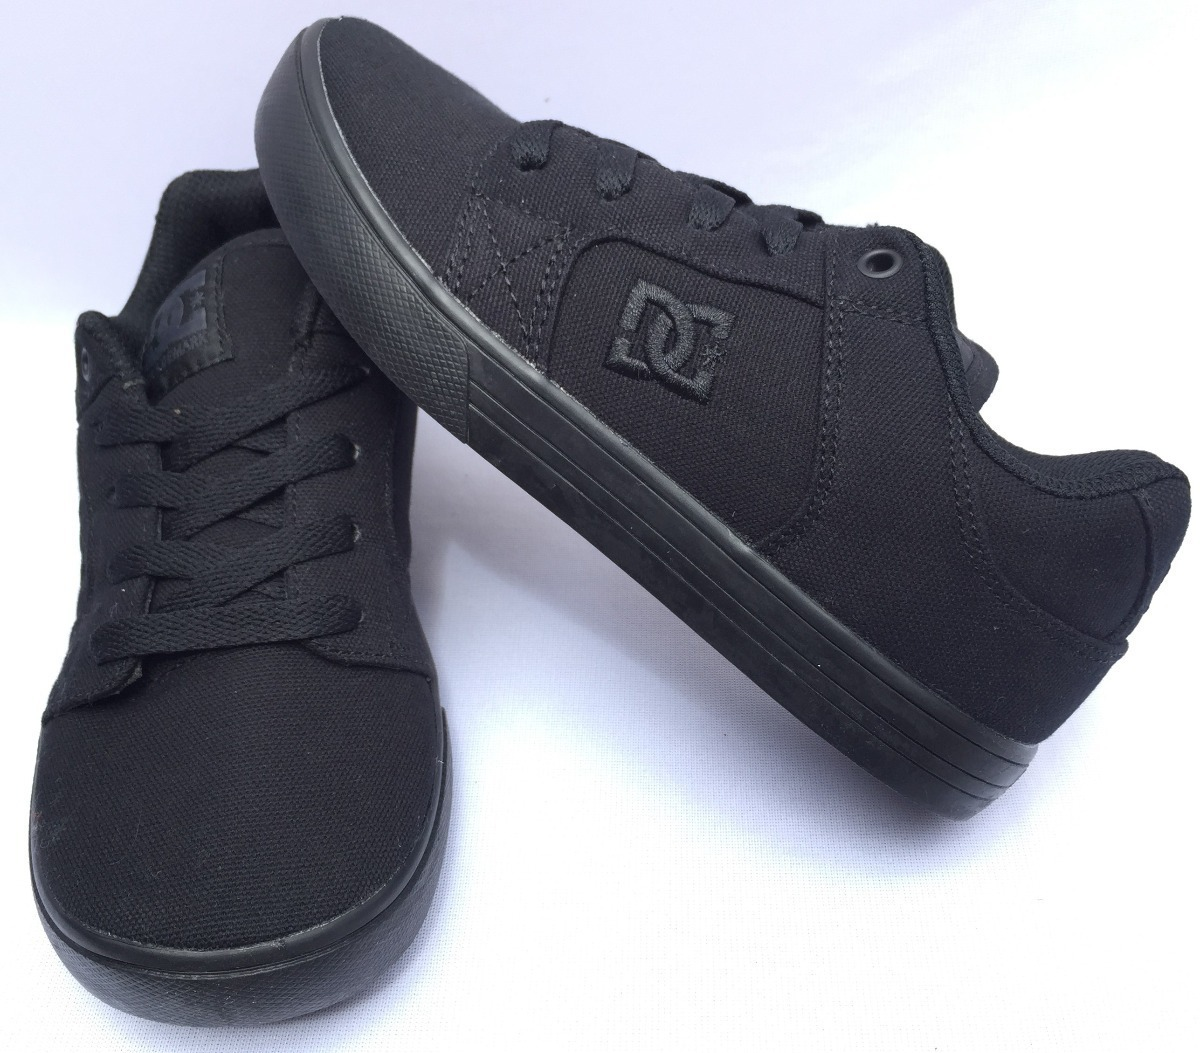 c9a67999a6e Tenis Dc Shoes Method Textil Negro Talla 22- 22.5cm -   449.00 en ...